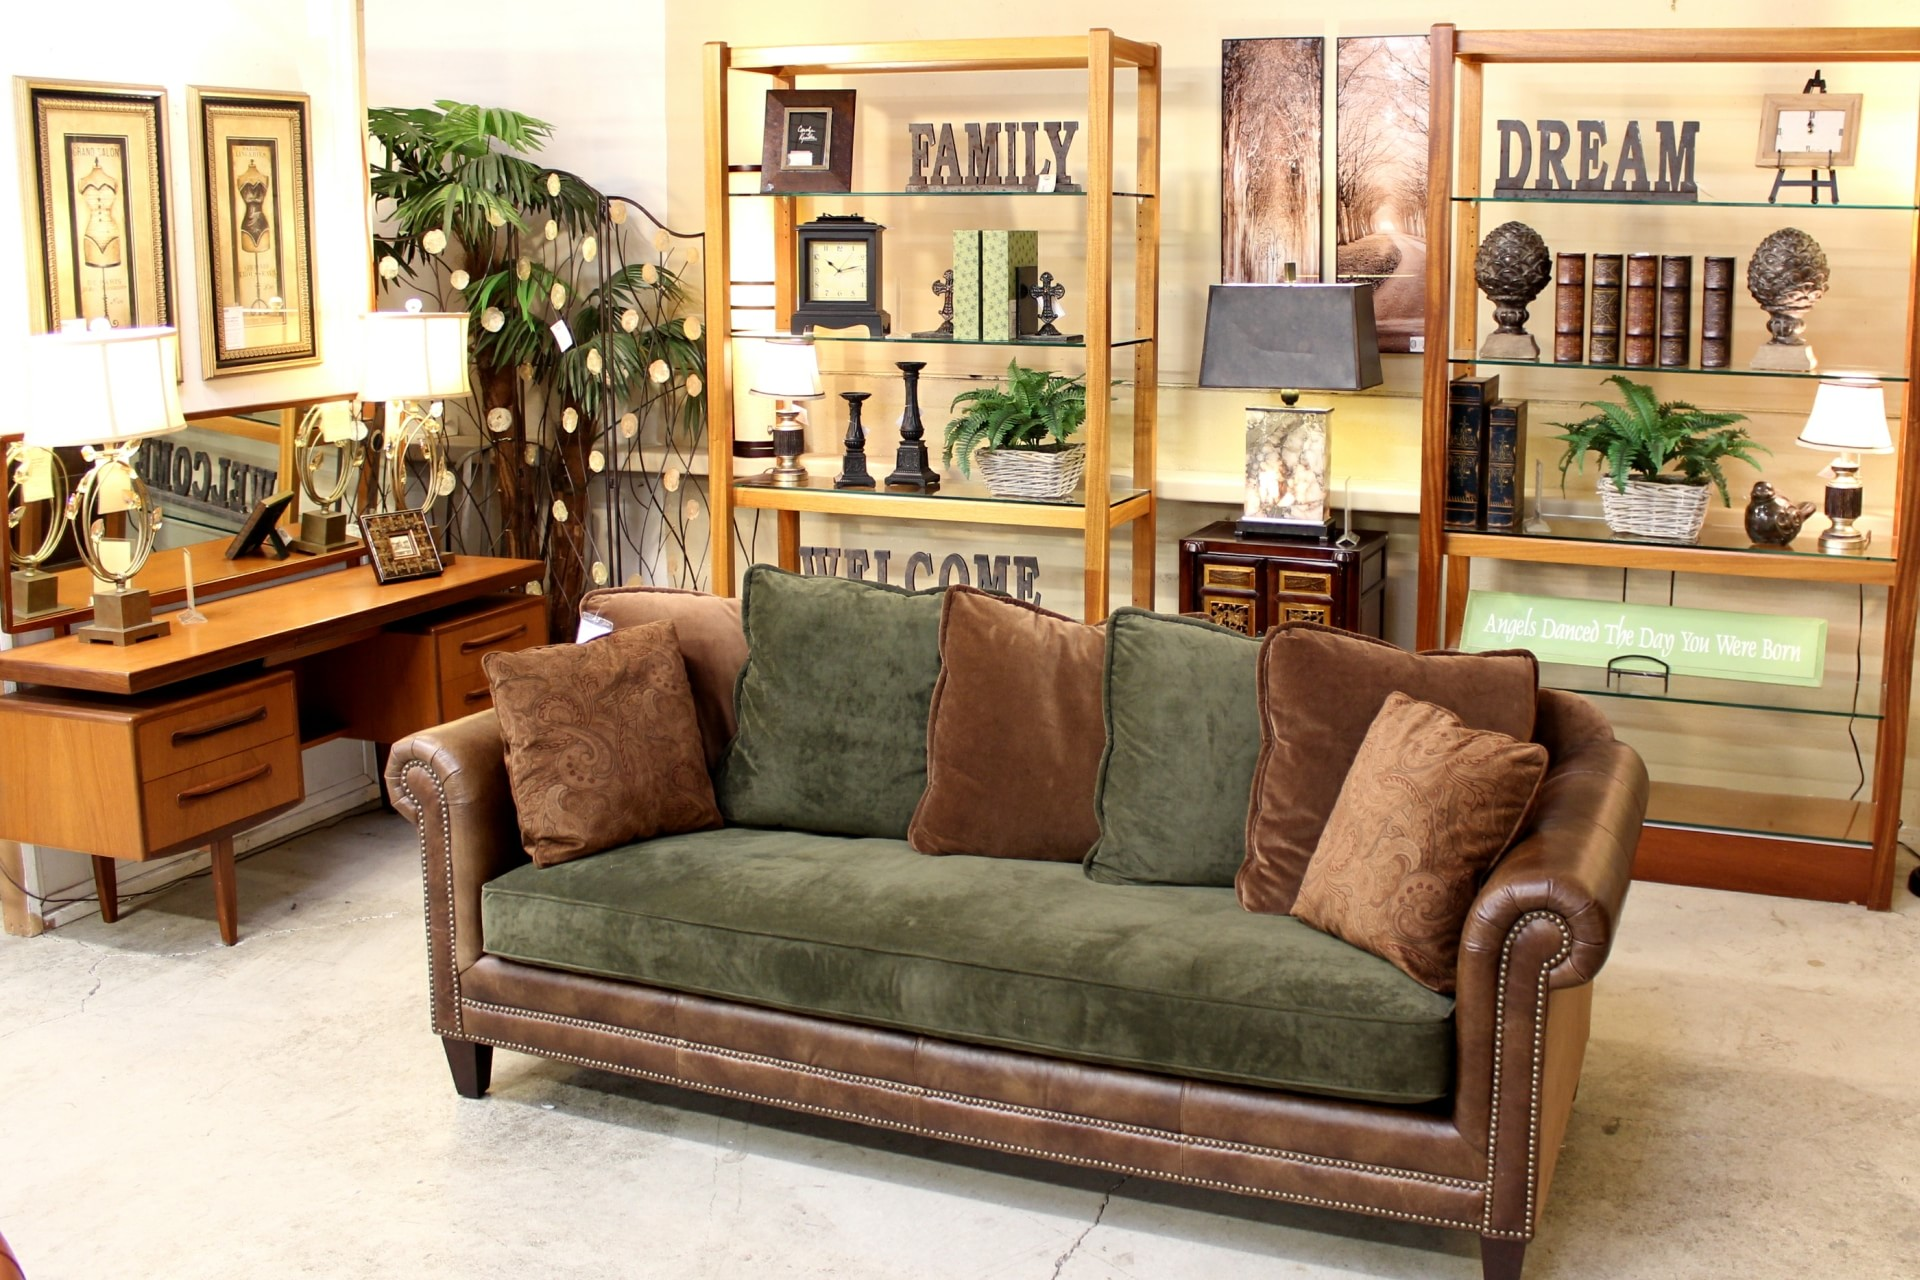 Upscale Consignment Furniture & Decor fifth image